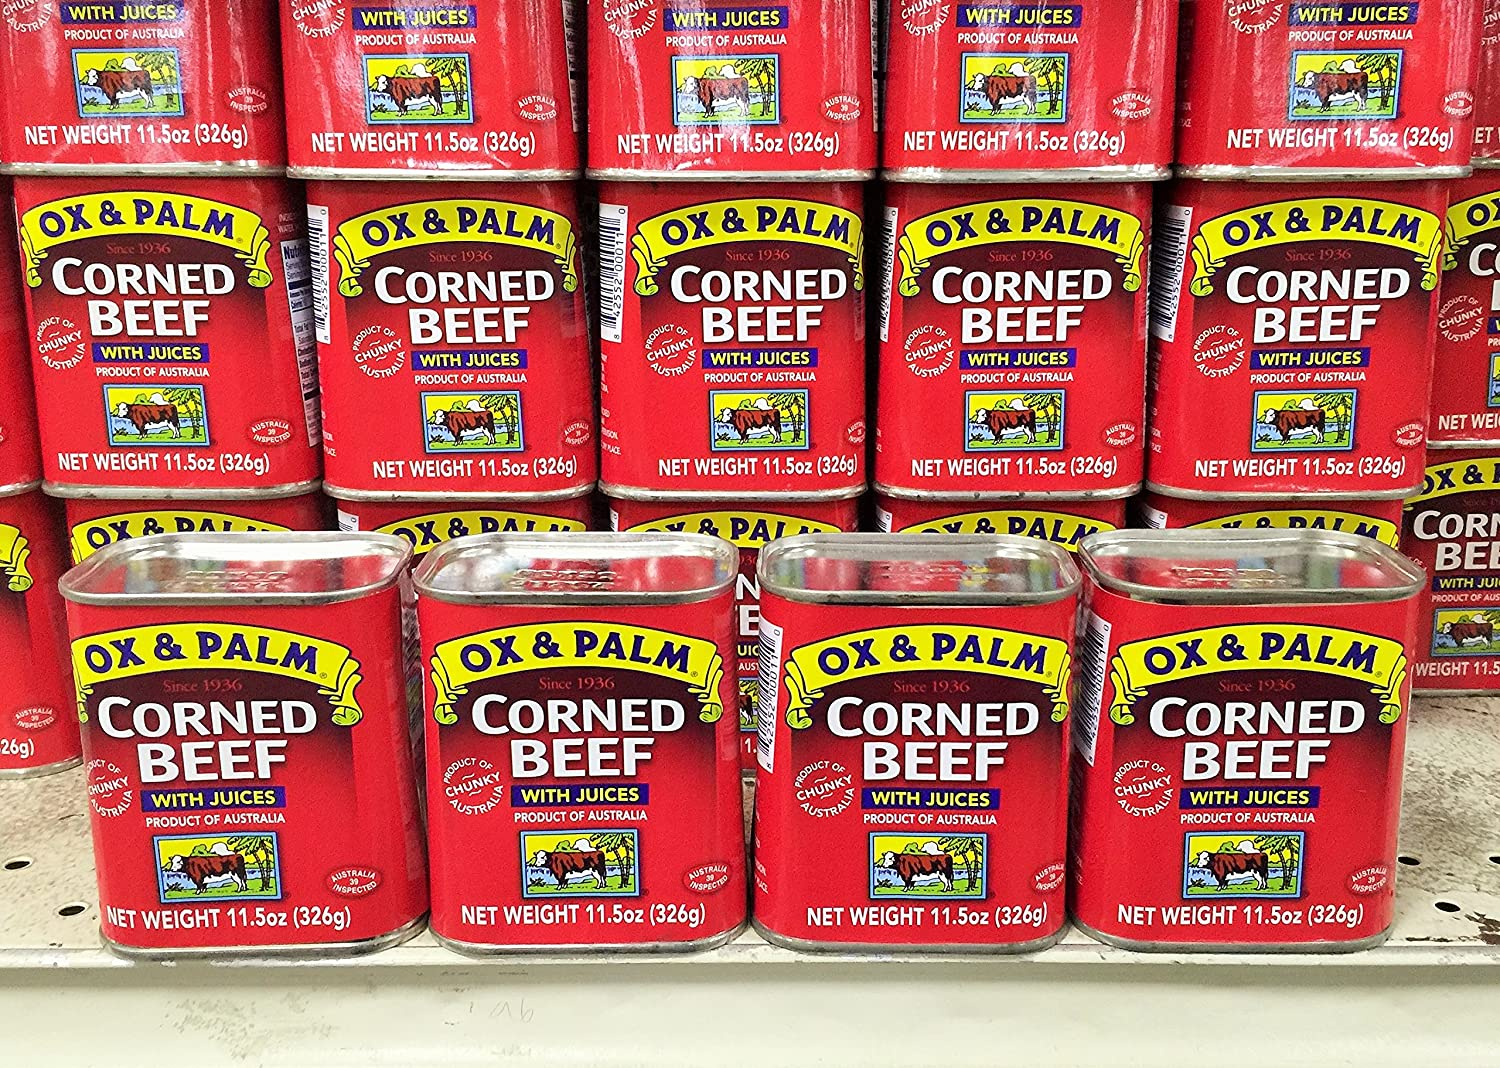 4 Packs Ox & Palm Corned Beef with Juices 11.5oz Ea